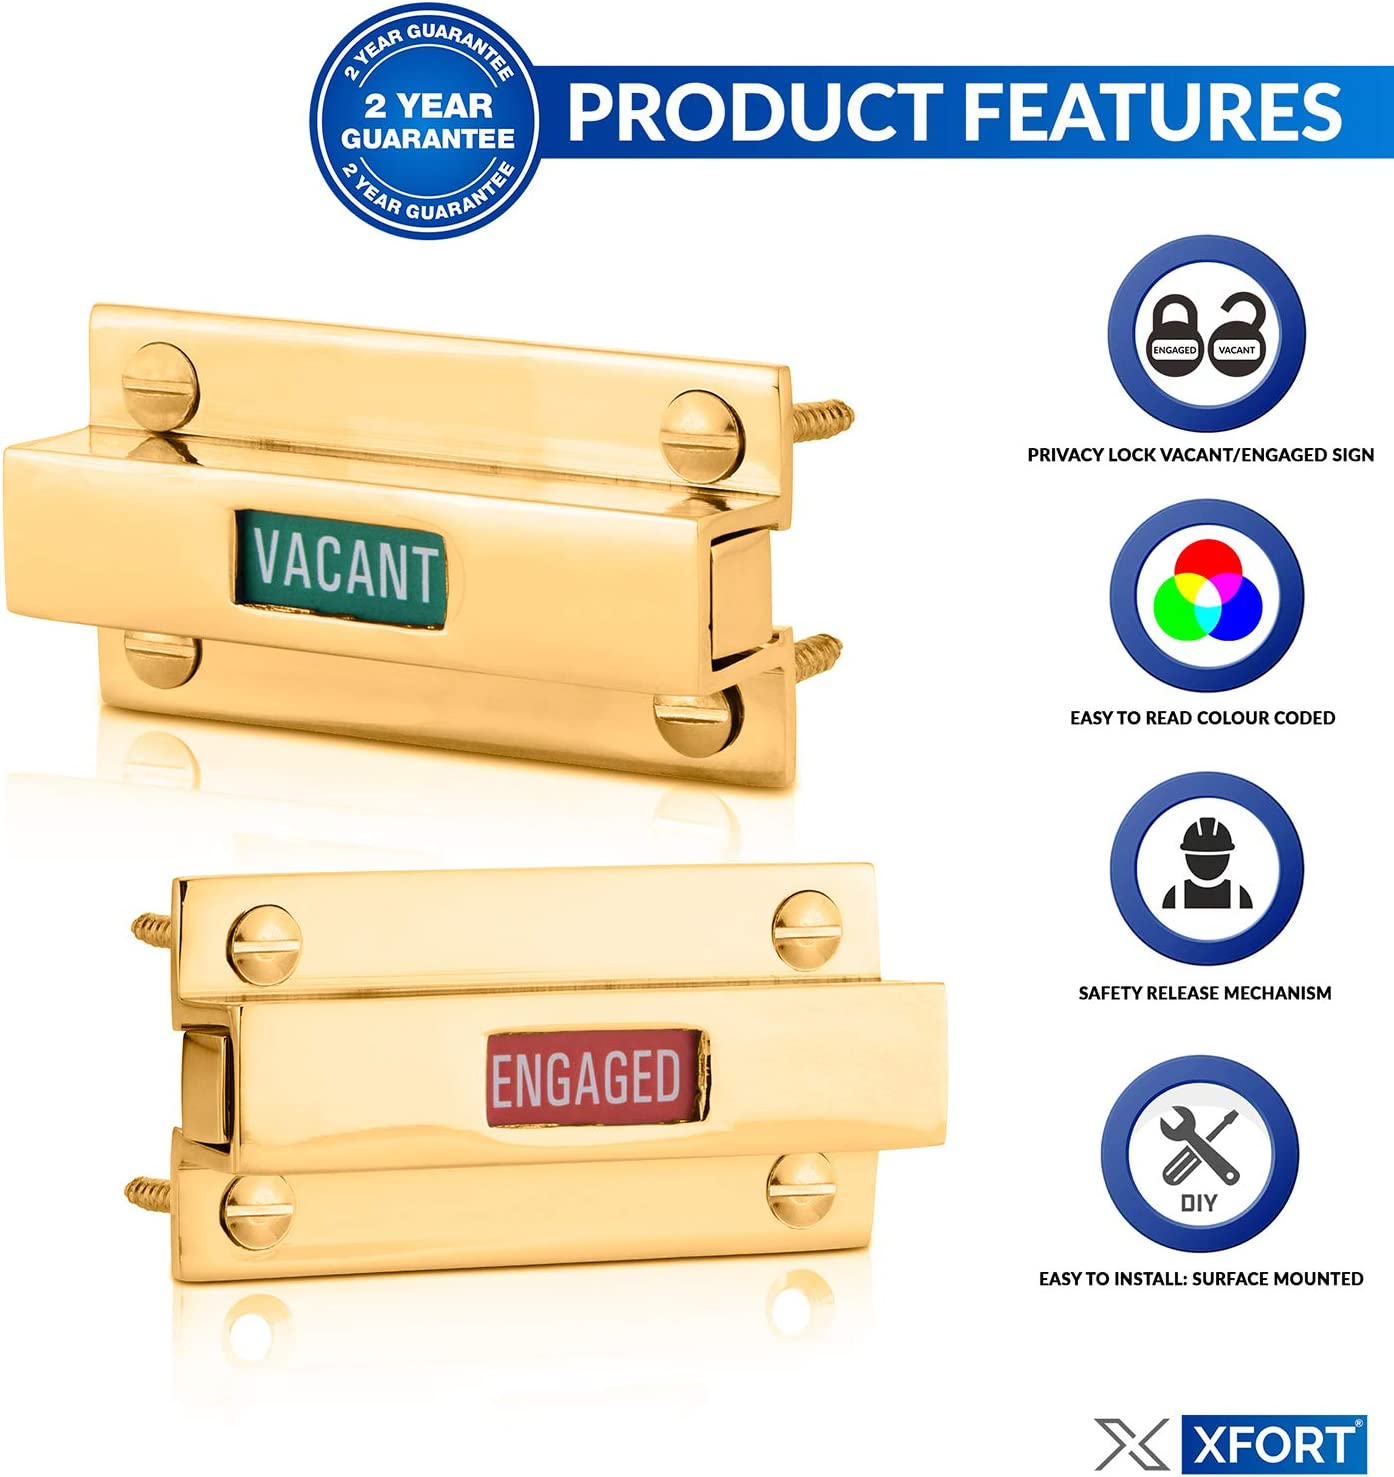 Toilet Shower Or Cubicles Door Lock Bolt with Engaged Vacant Door Sign for Bathroom XFORT/® Brass Indicator Bolt Lock with Slide Release Privacy Bathroom Lock with Emergency Release